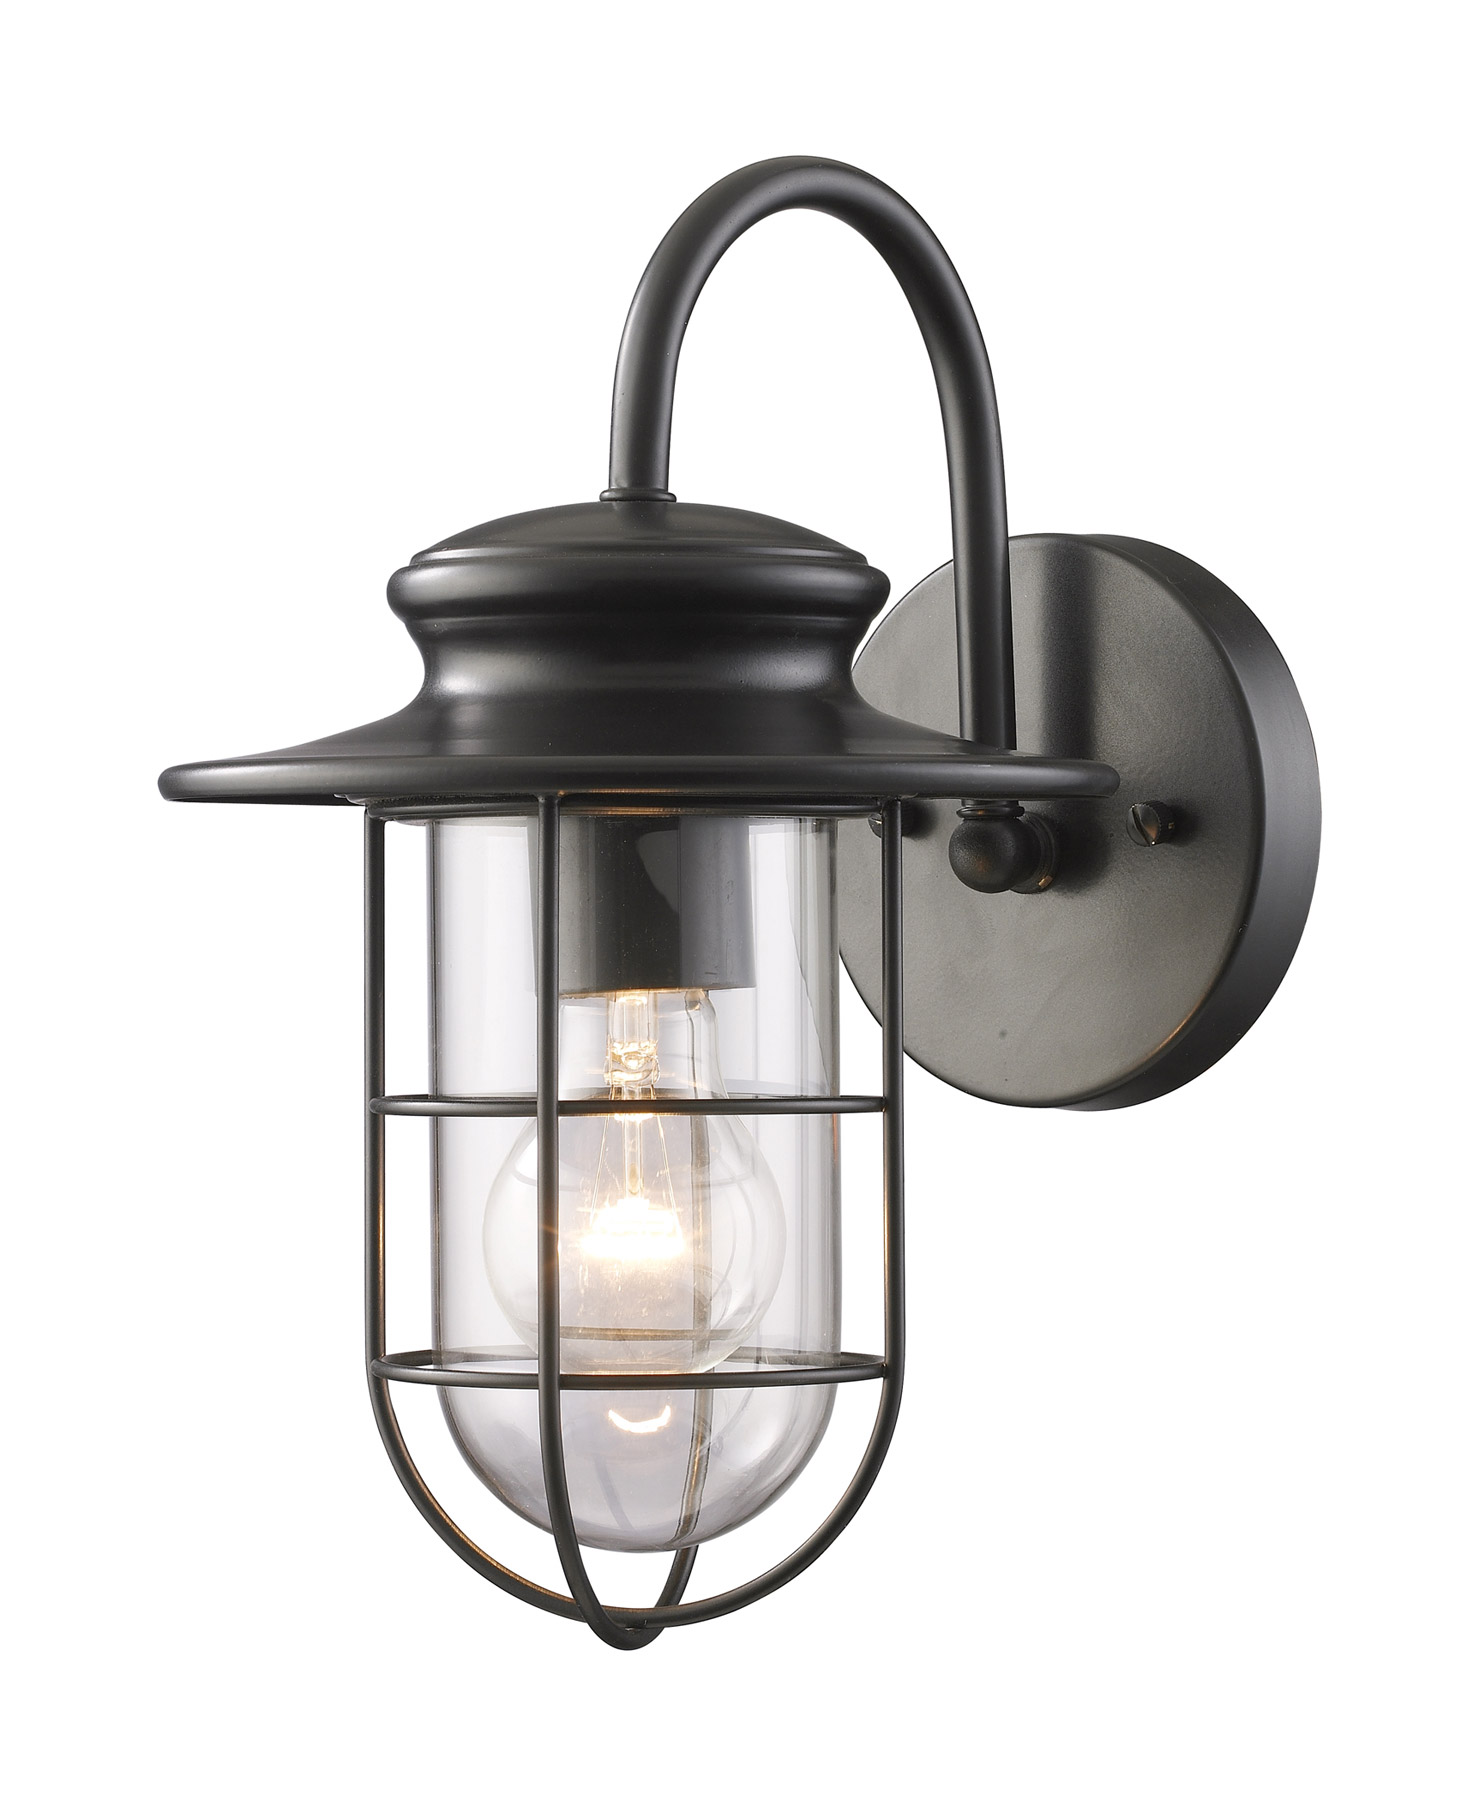 Elk Lighting 42284/1 Portside Outdoor Wall Mount Lantern